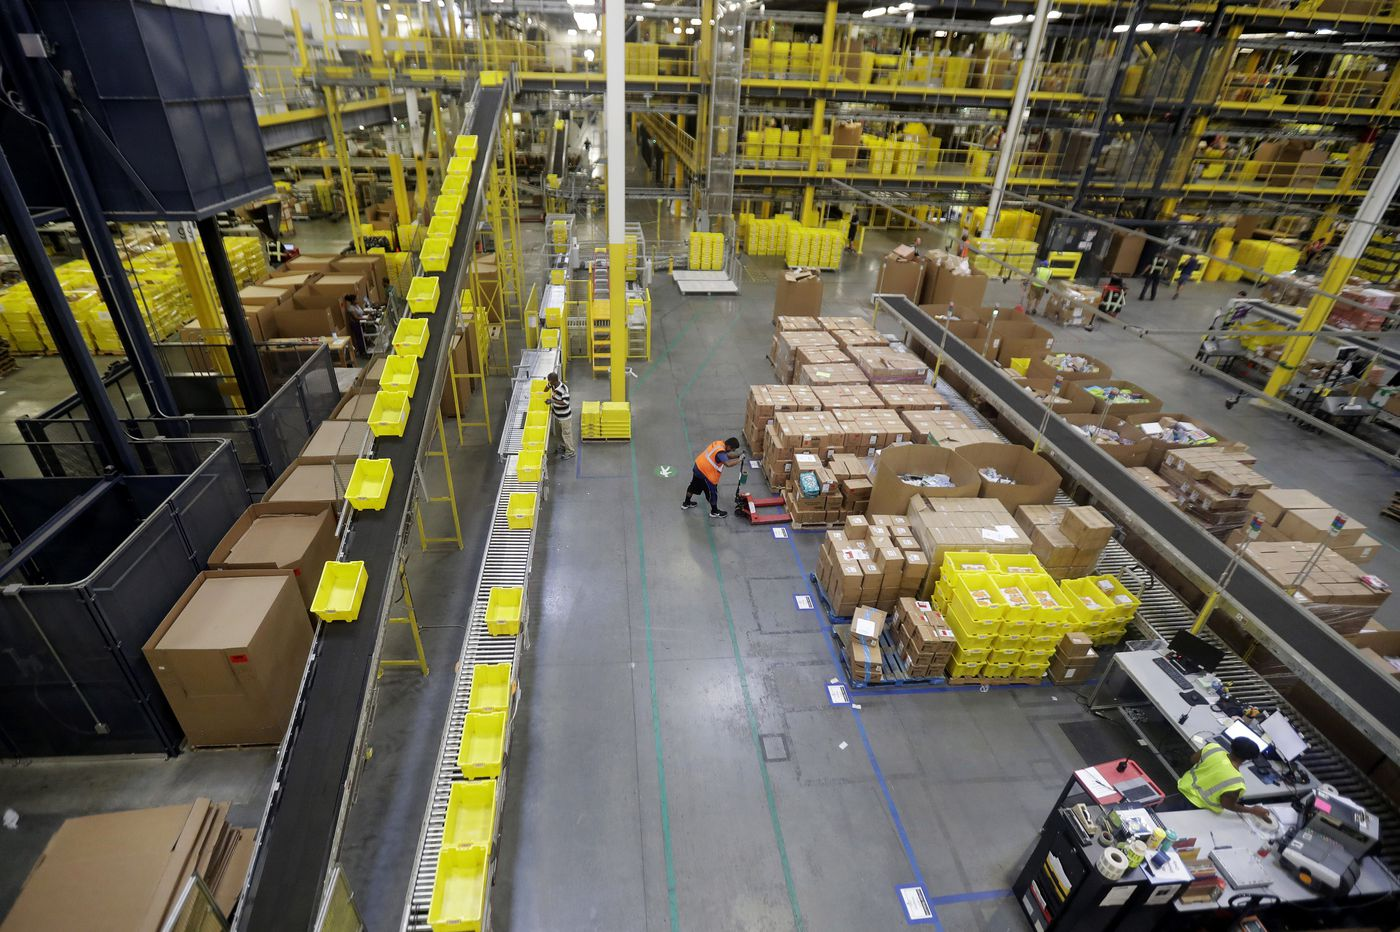 Amazon is raising its minimum wage to $15 an hour. Here's what it could mean for Philly